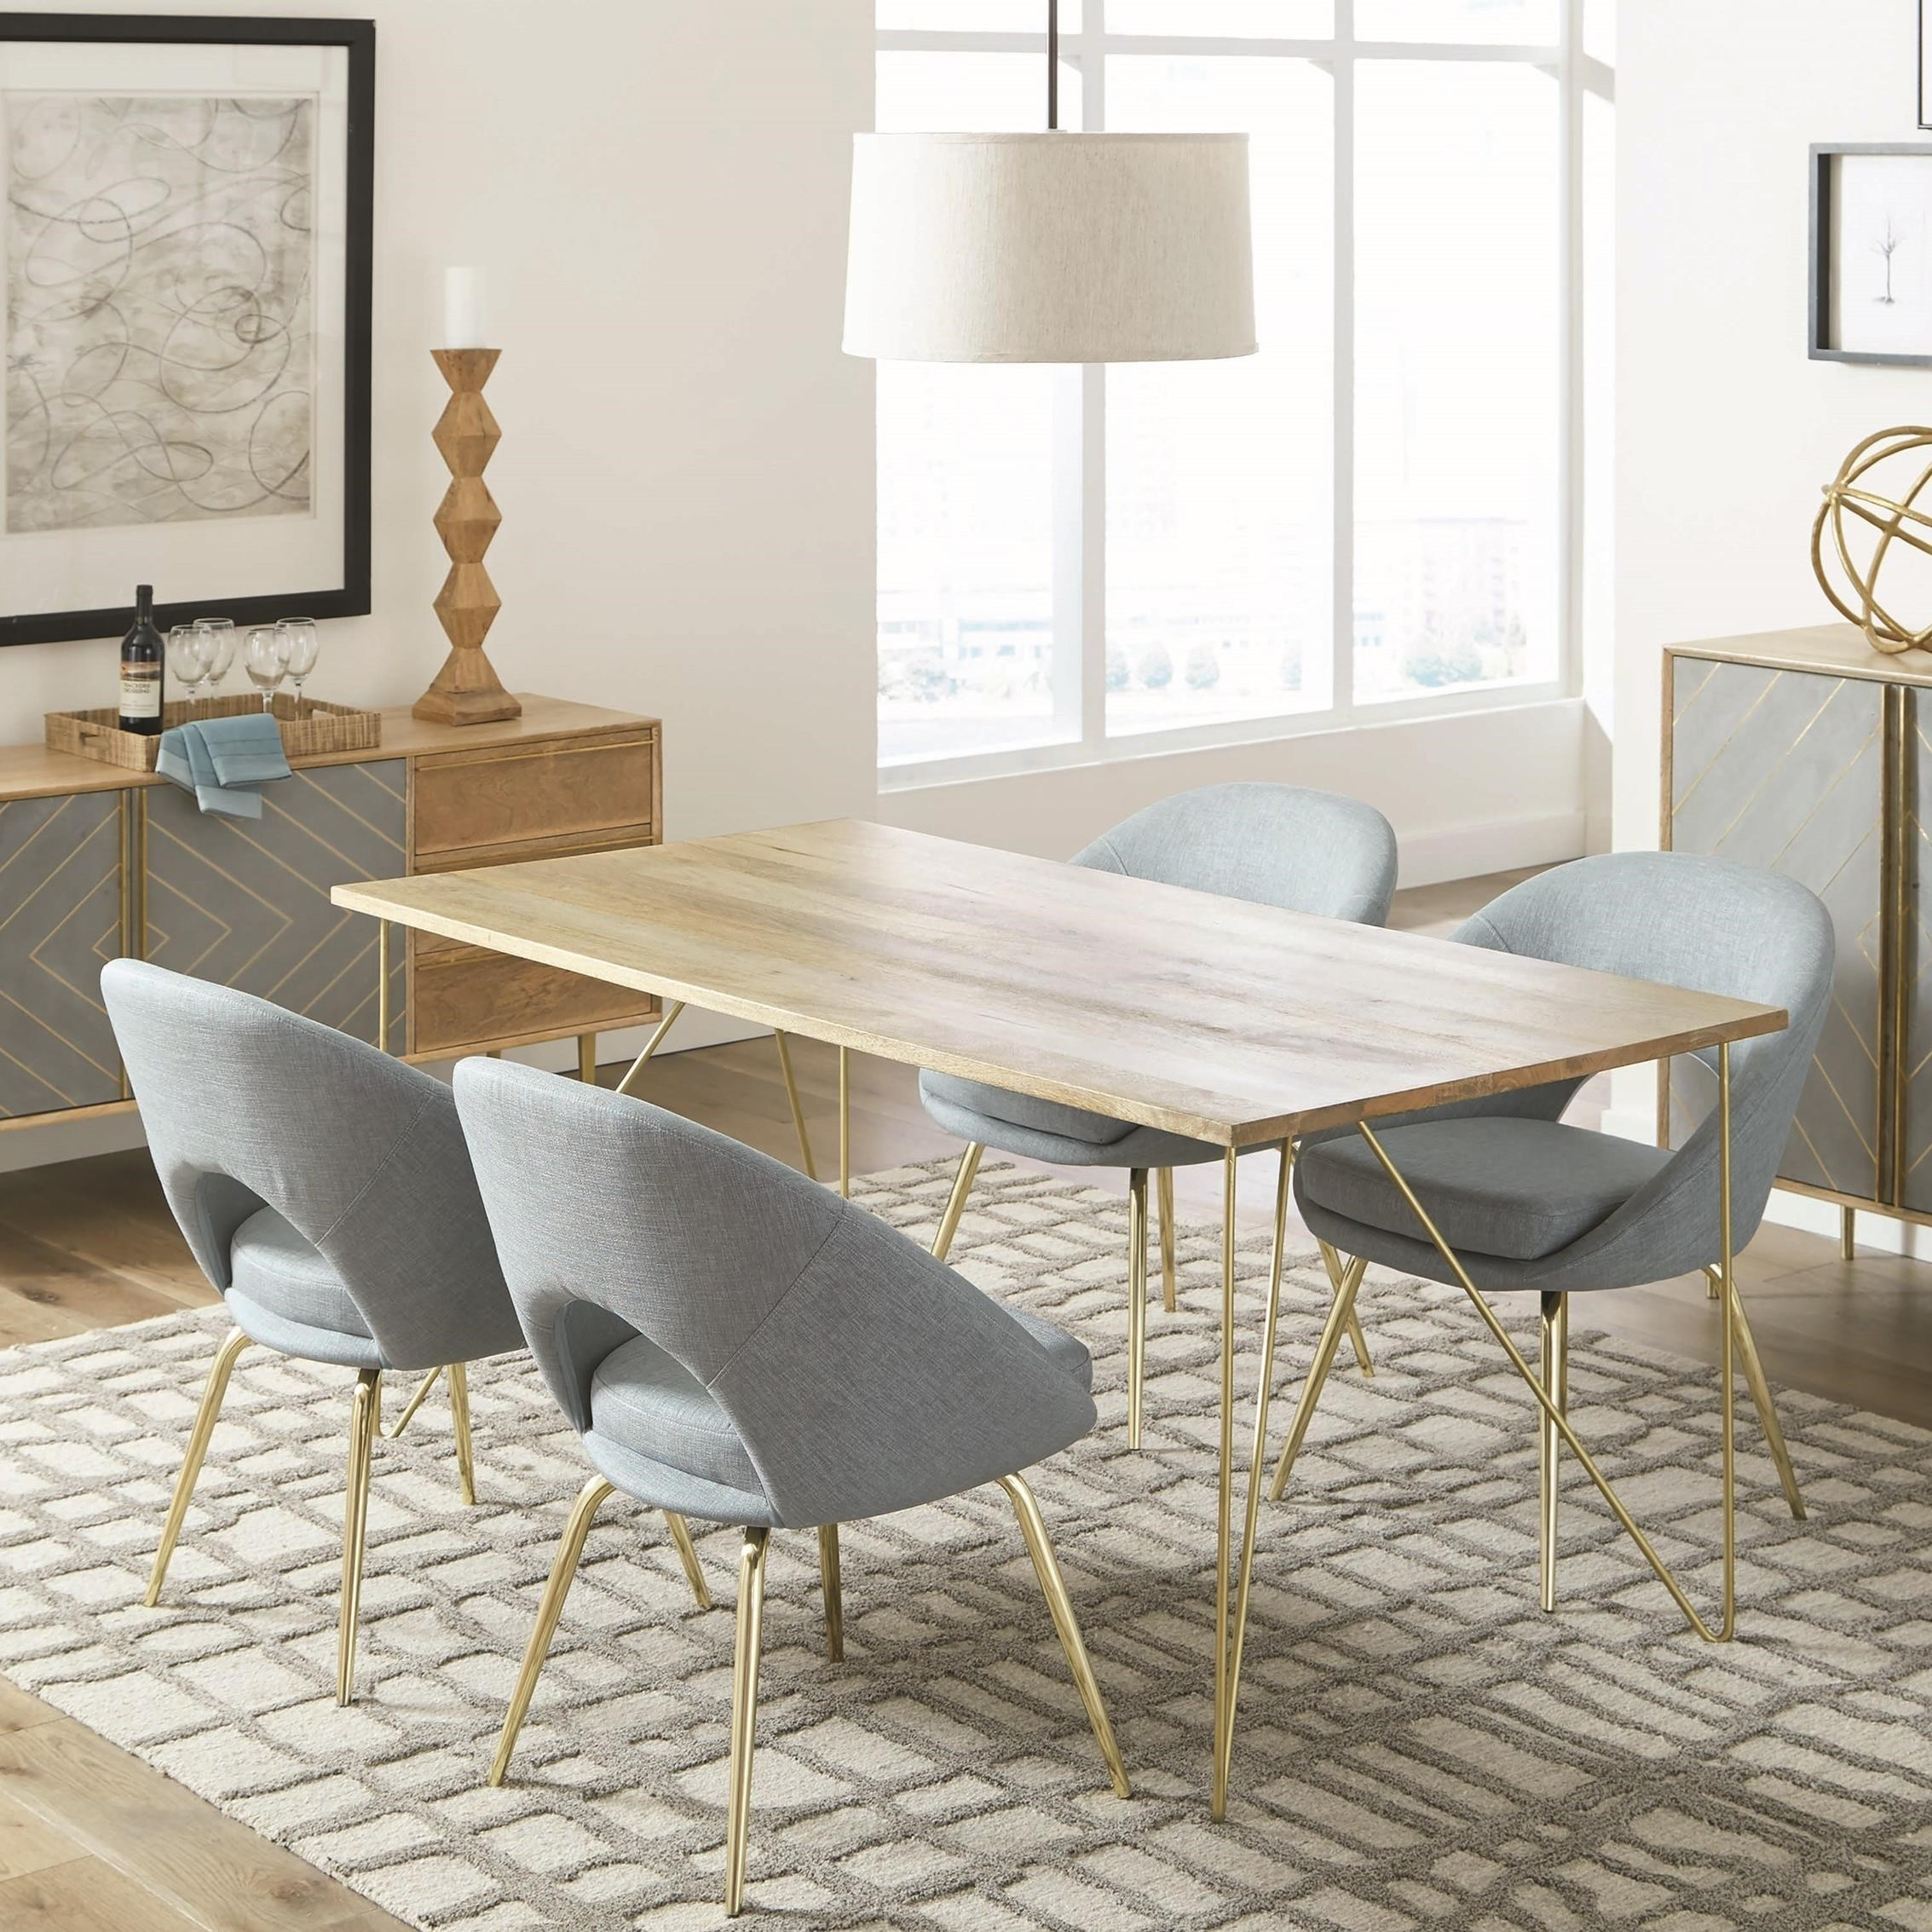 Donny Osmond Home Pennington Contemporary Table and Chair Set - Coaster Fine Furniture & Donny Osmond Home Pennington Contemporary Table and Chair Set ...